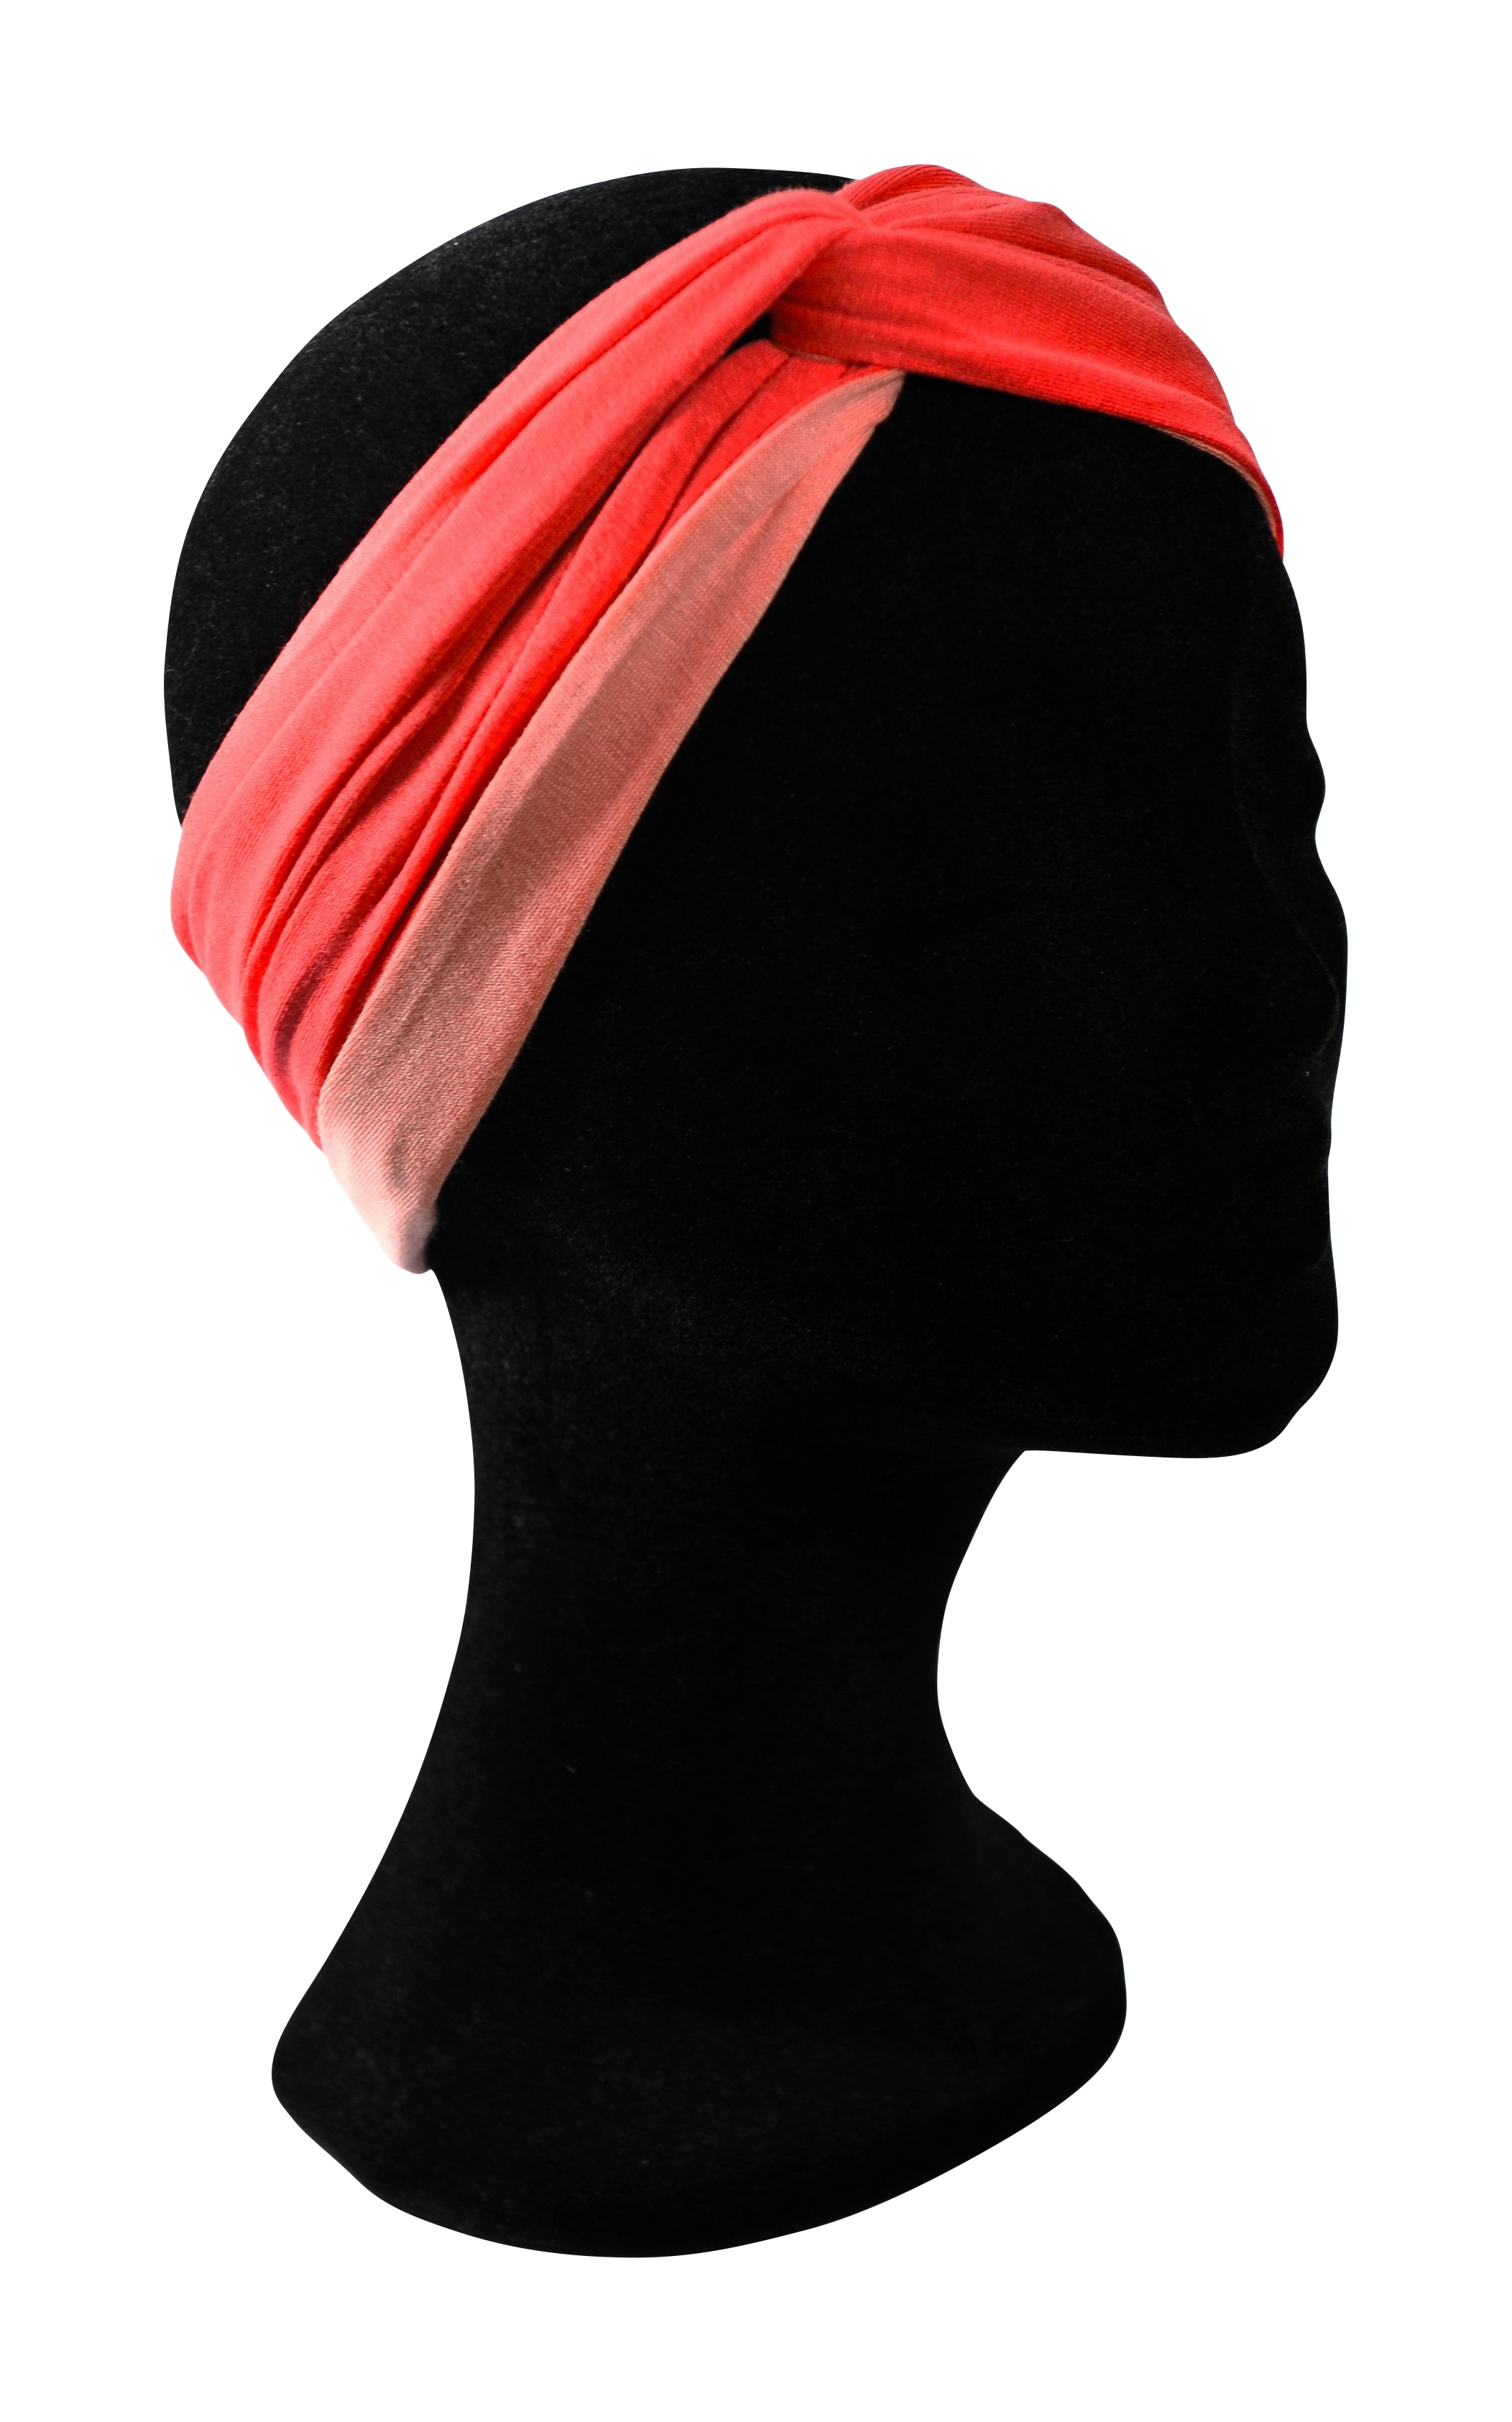 Turban Miry Candy, pêche et rose.  25.00€